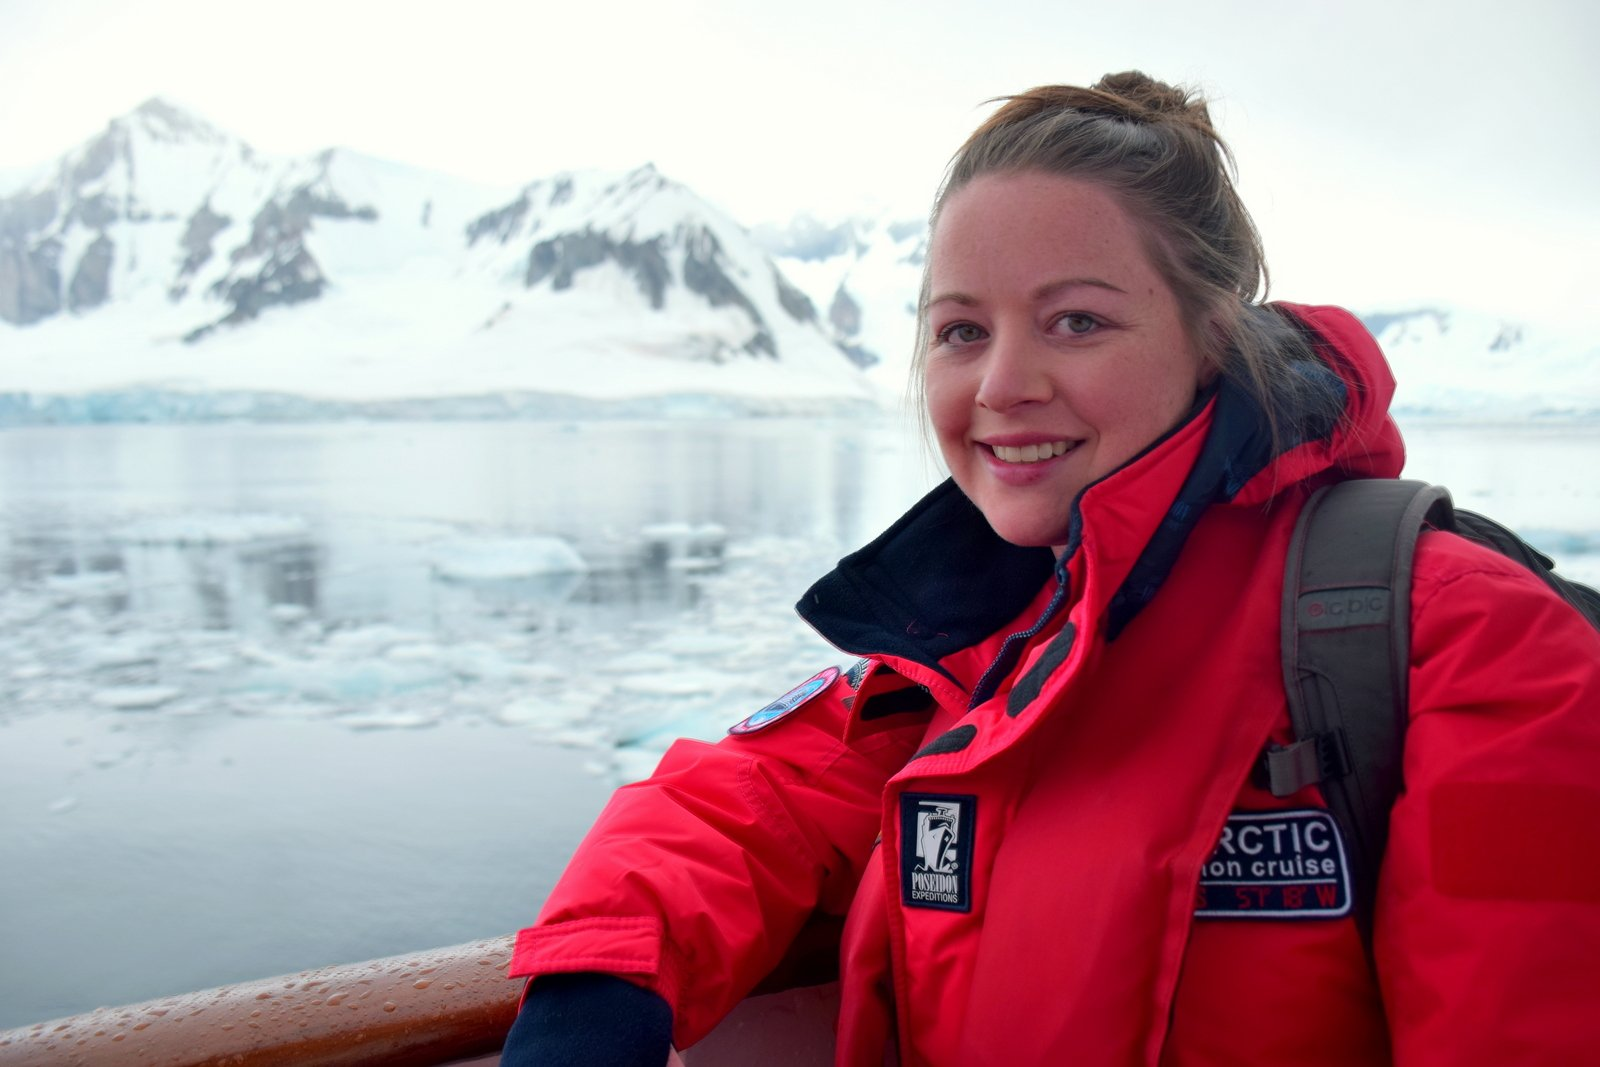 Megan Jerrard on a boat in Antarctica with snowy mountains behind